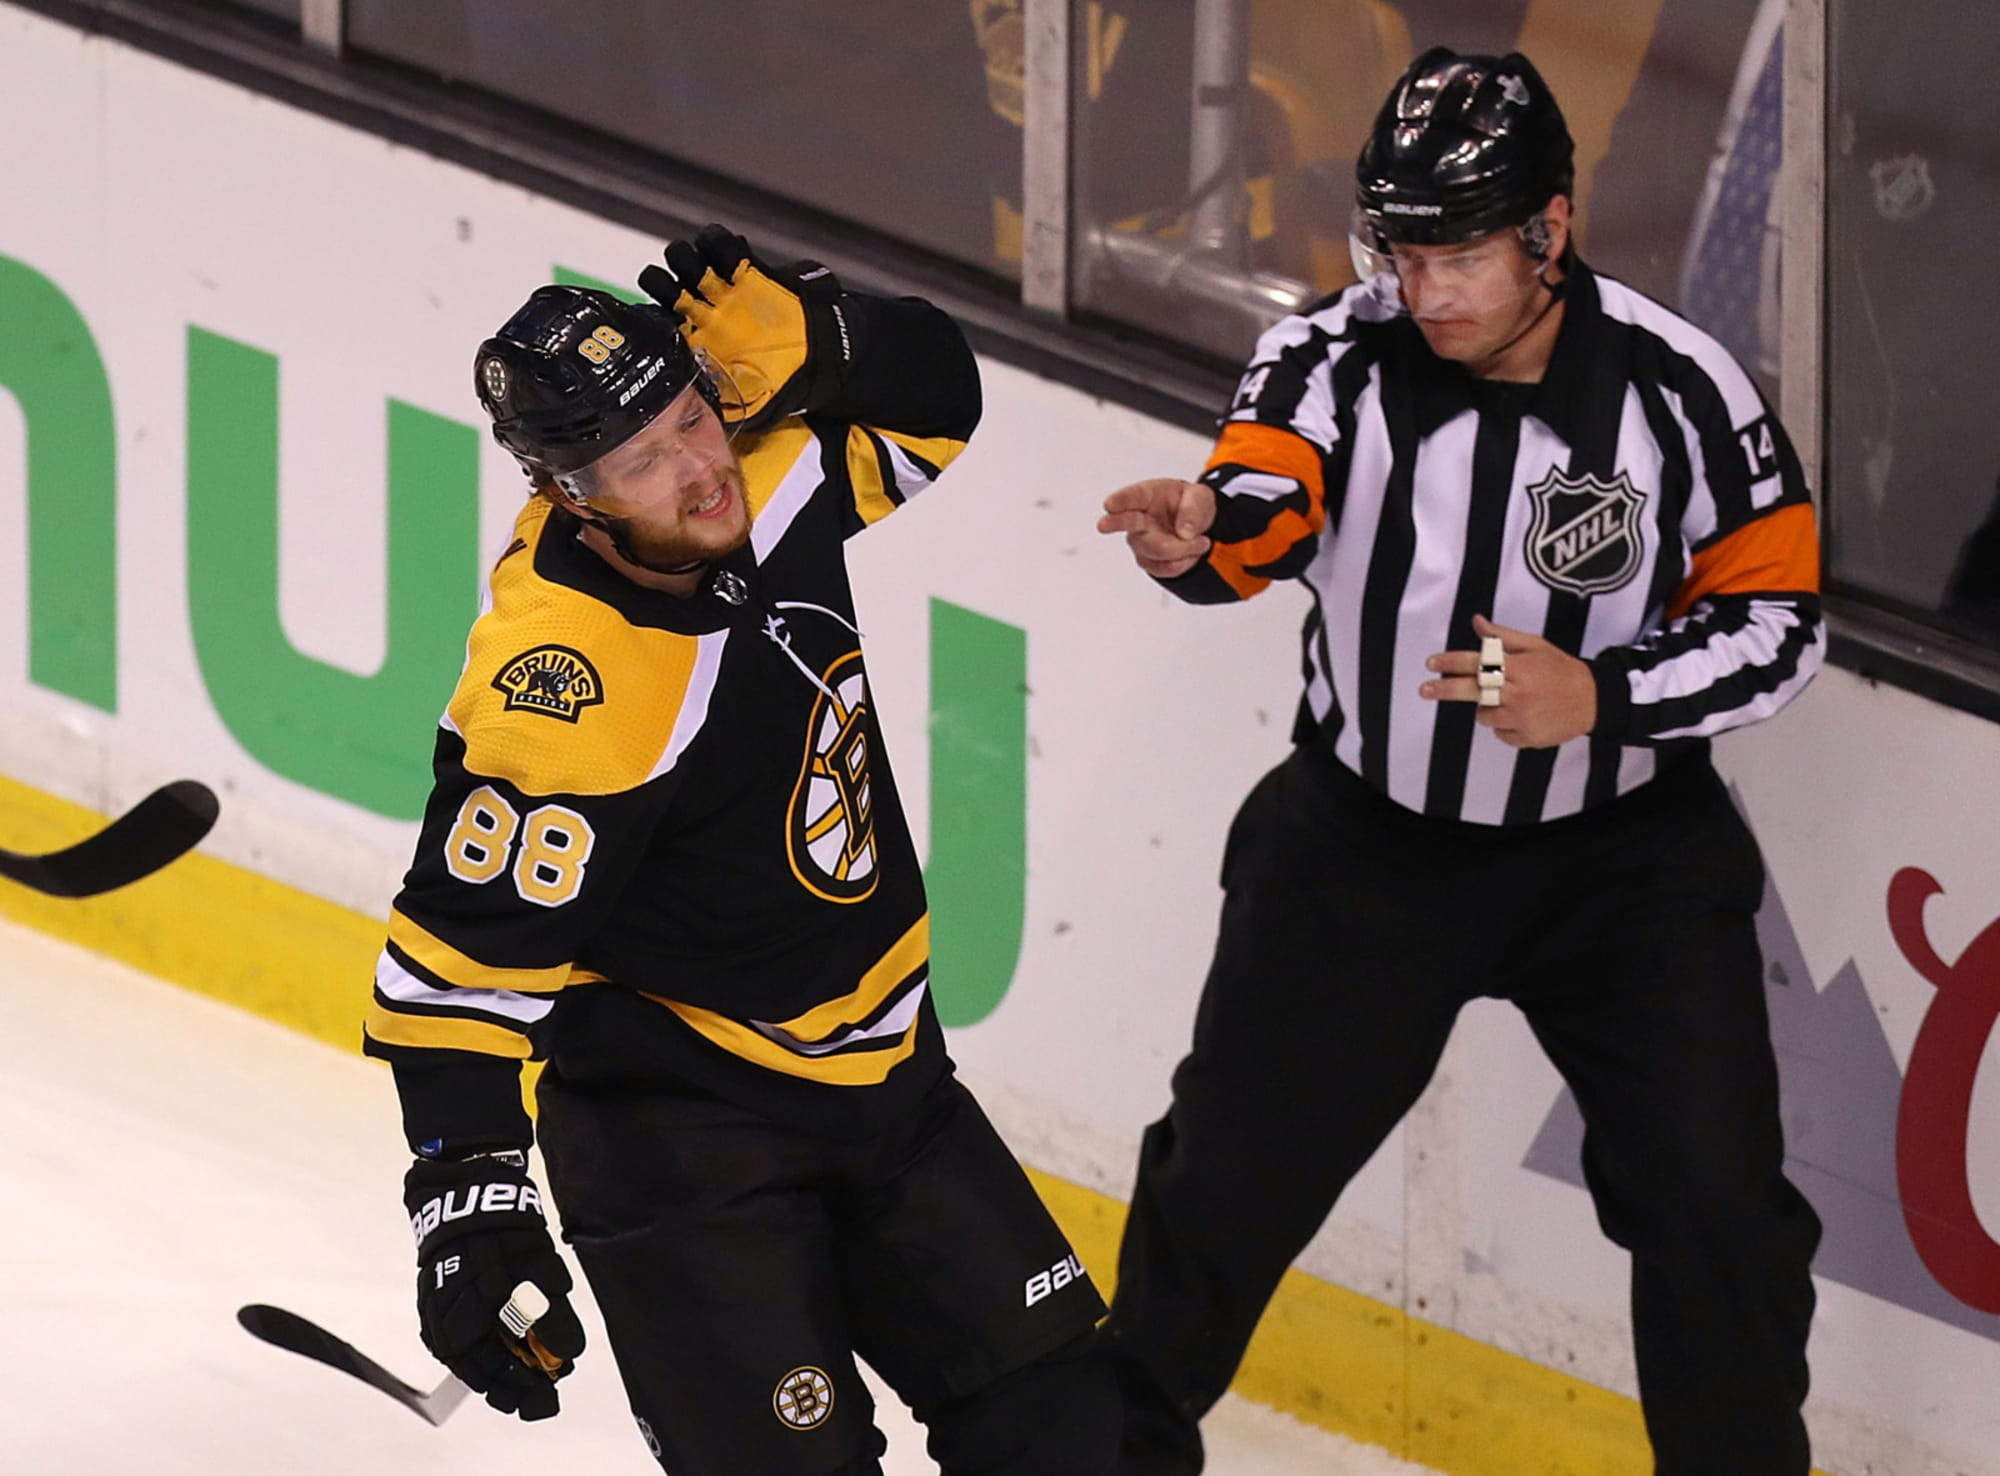 Boston Bruins Vs Toronto Maple Leafs Game 5 Preview And Predictions